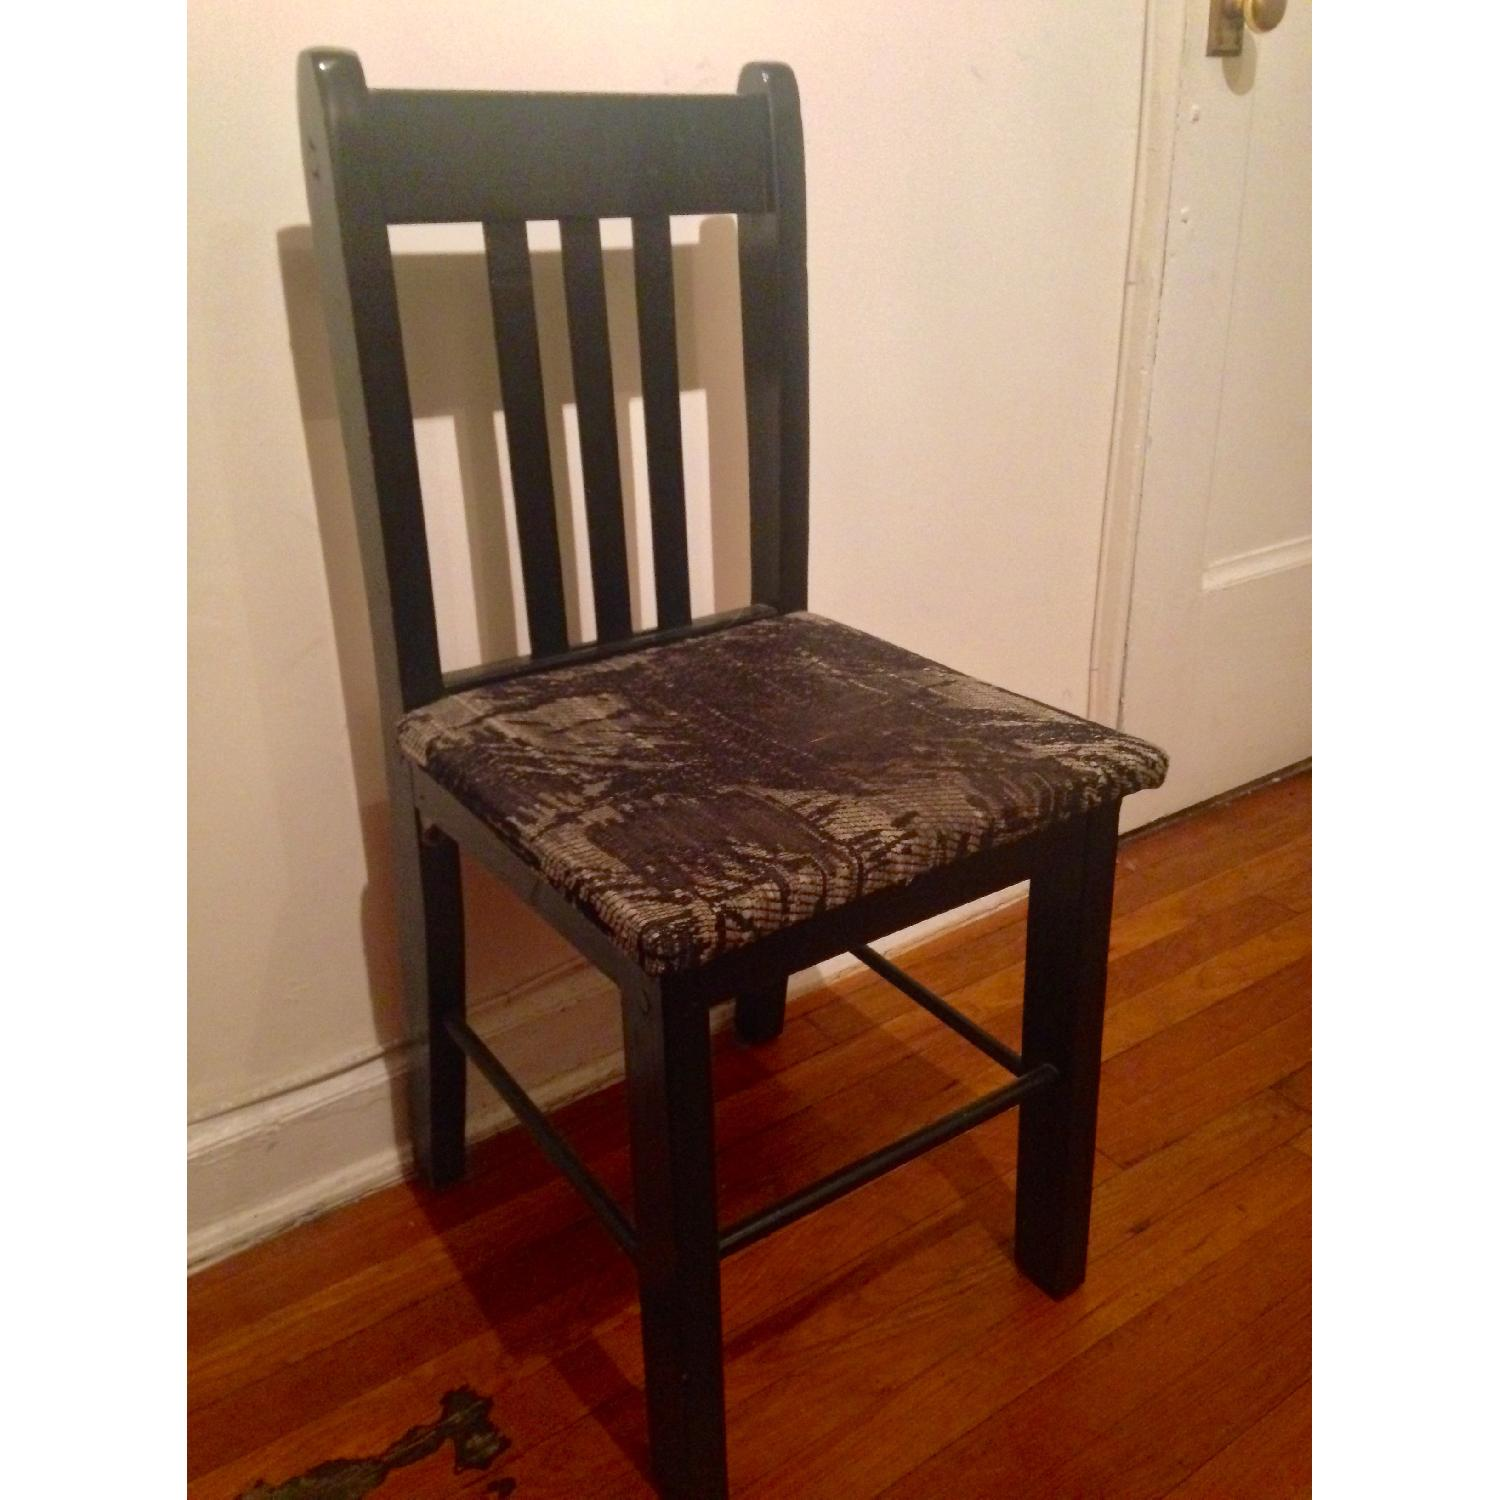 Retro Black Accent/Dining Chair w/ Knitted Fabric Seat - image-3